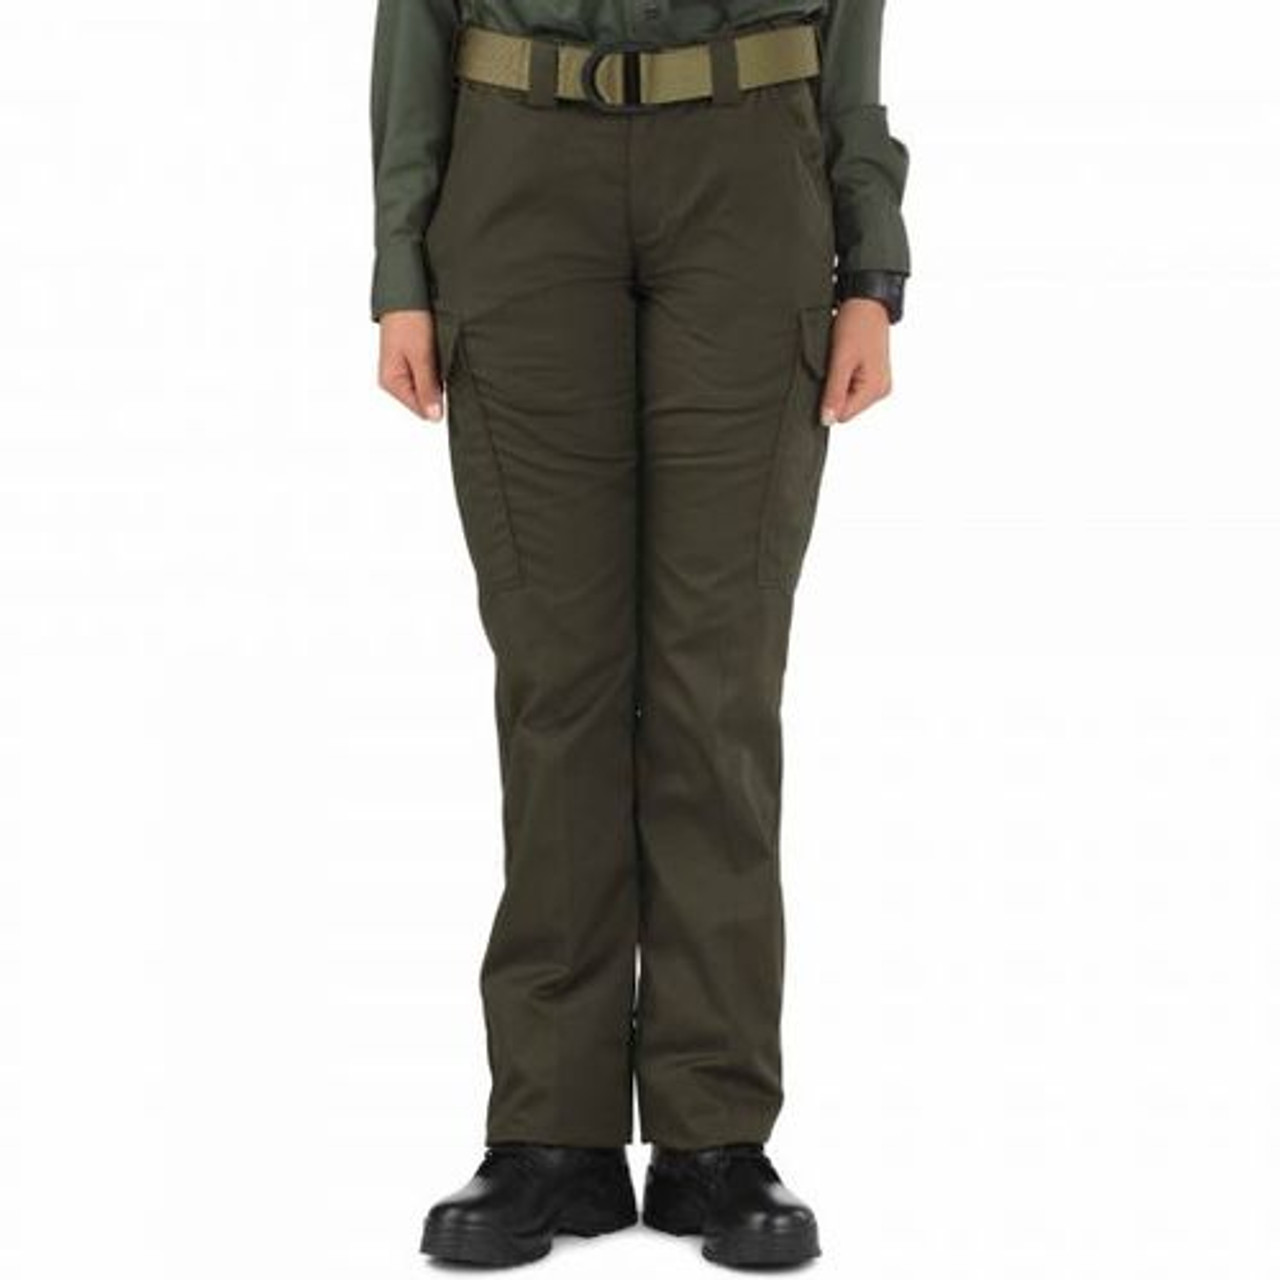 5.11 Tactical 64306 Women's Twill PDU Class-B Uniform Cargo Pants, Adjustable Waistband, Polyester/Cotton, Available in Black, Sheriff's Green, and Midnight Navy Blue